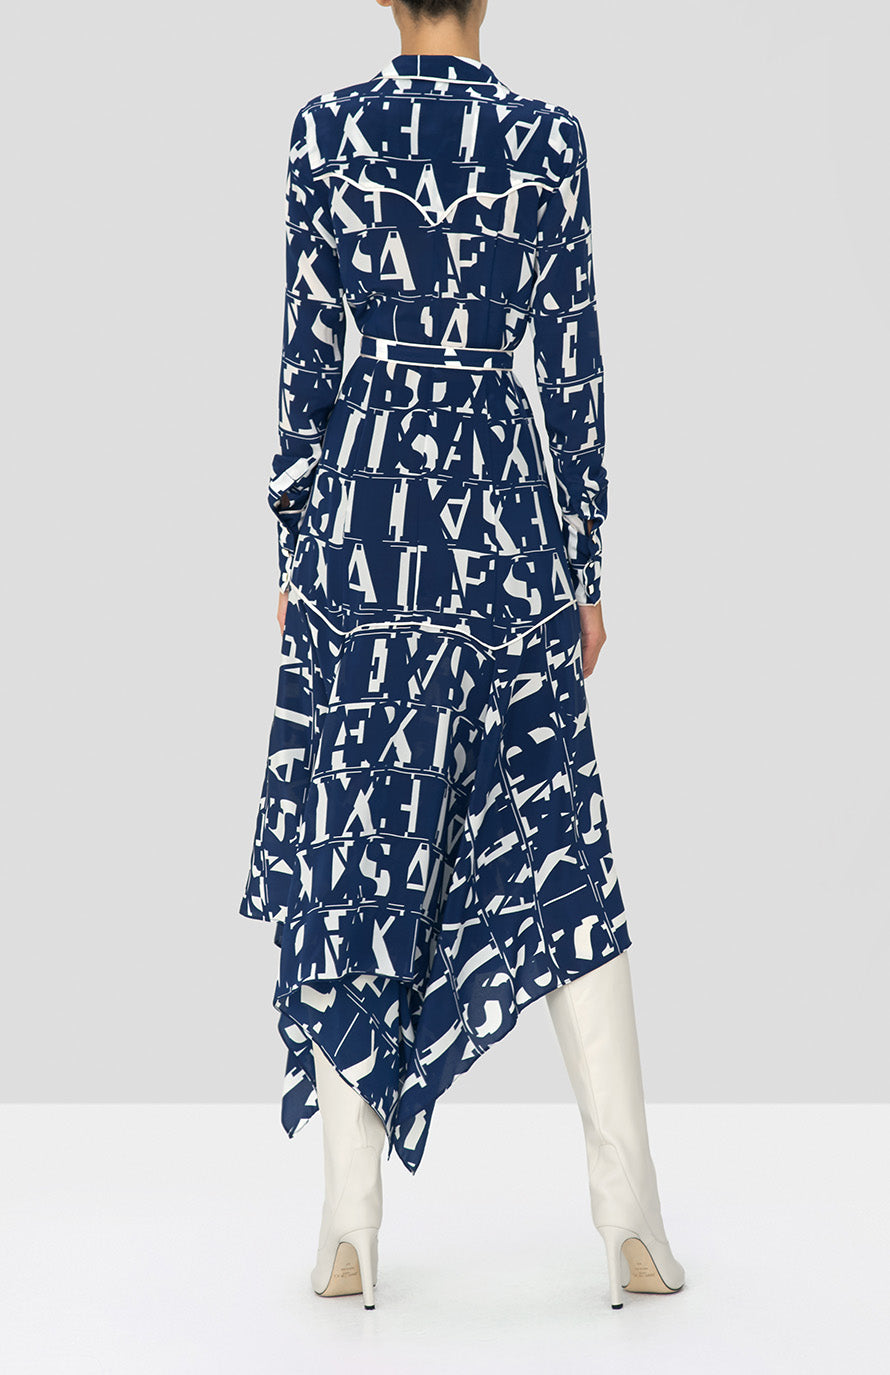 Alexis Marvella Dress in Navy Print from the Holiday 2019 Ready To Wear Collection - Rear View